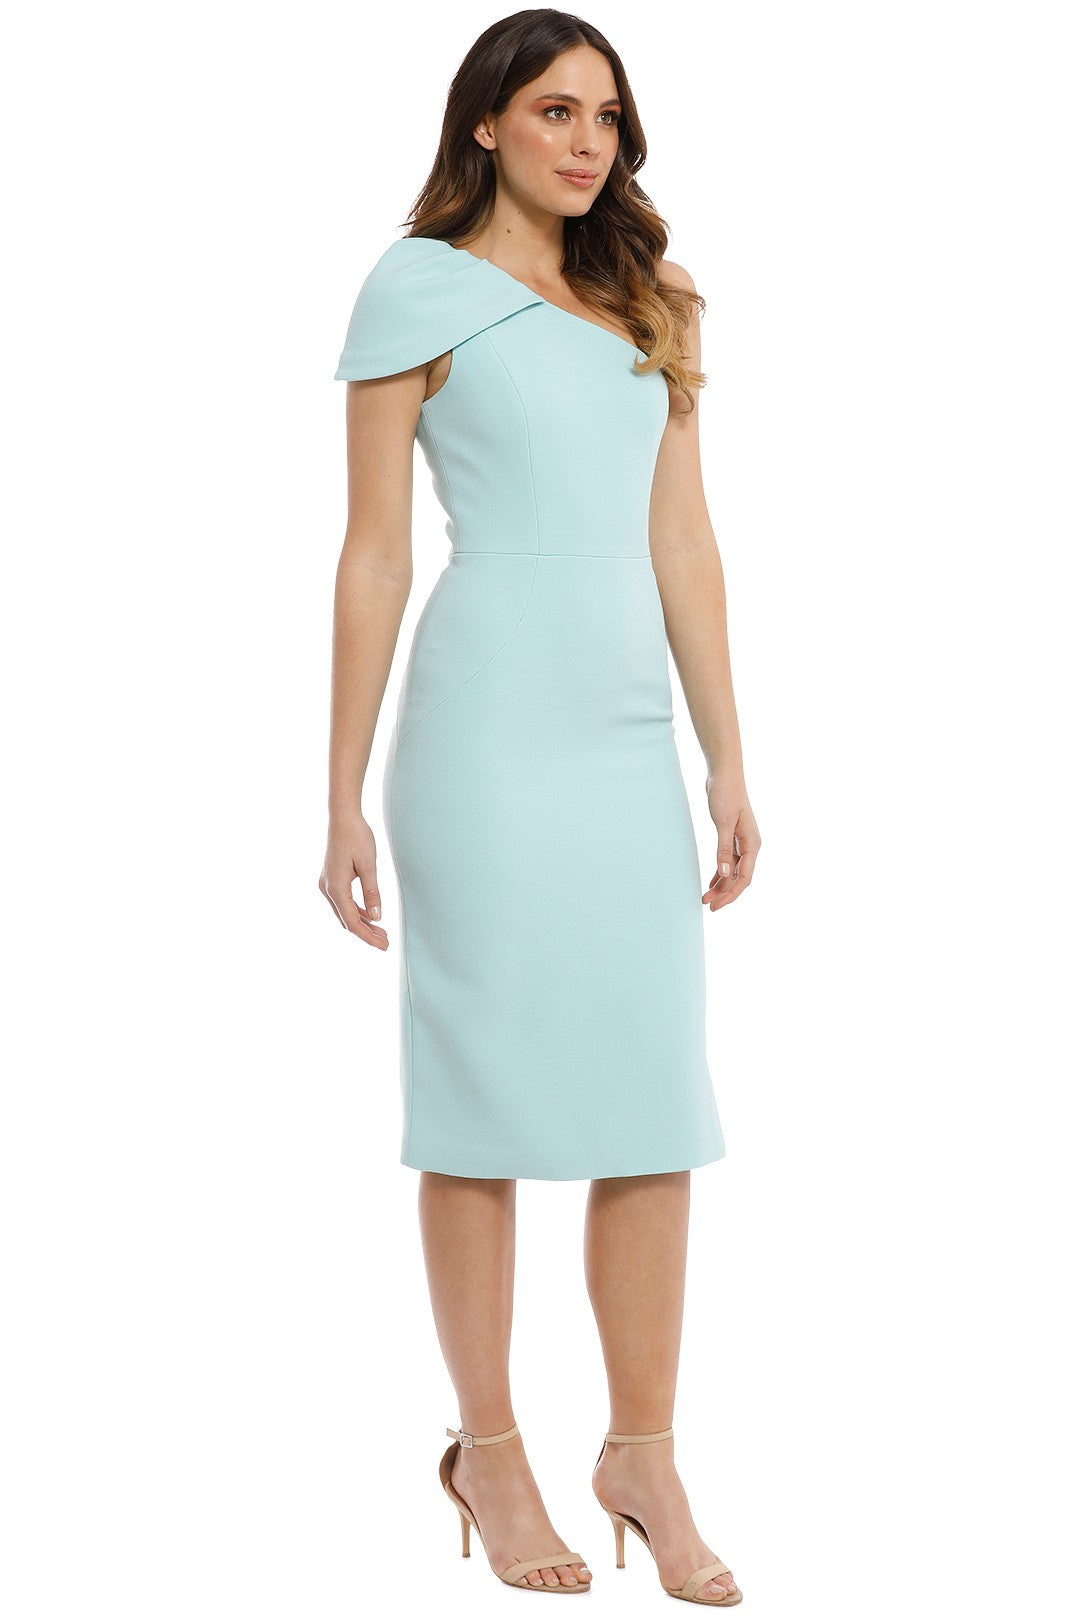 Rebecca Vallance Carline One Shoulder Dress in Eggshell Blue